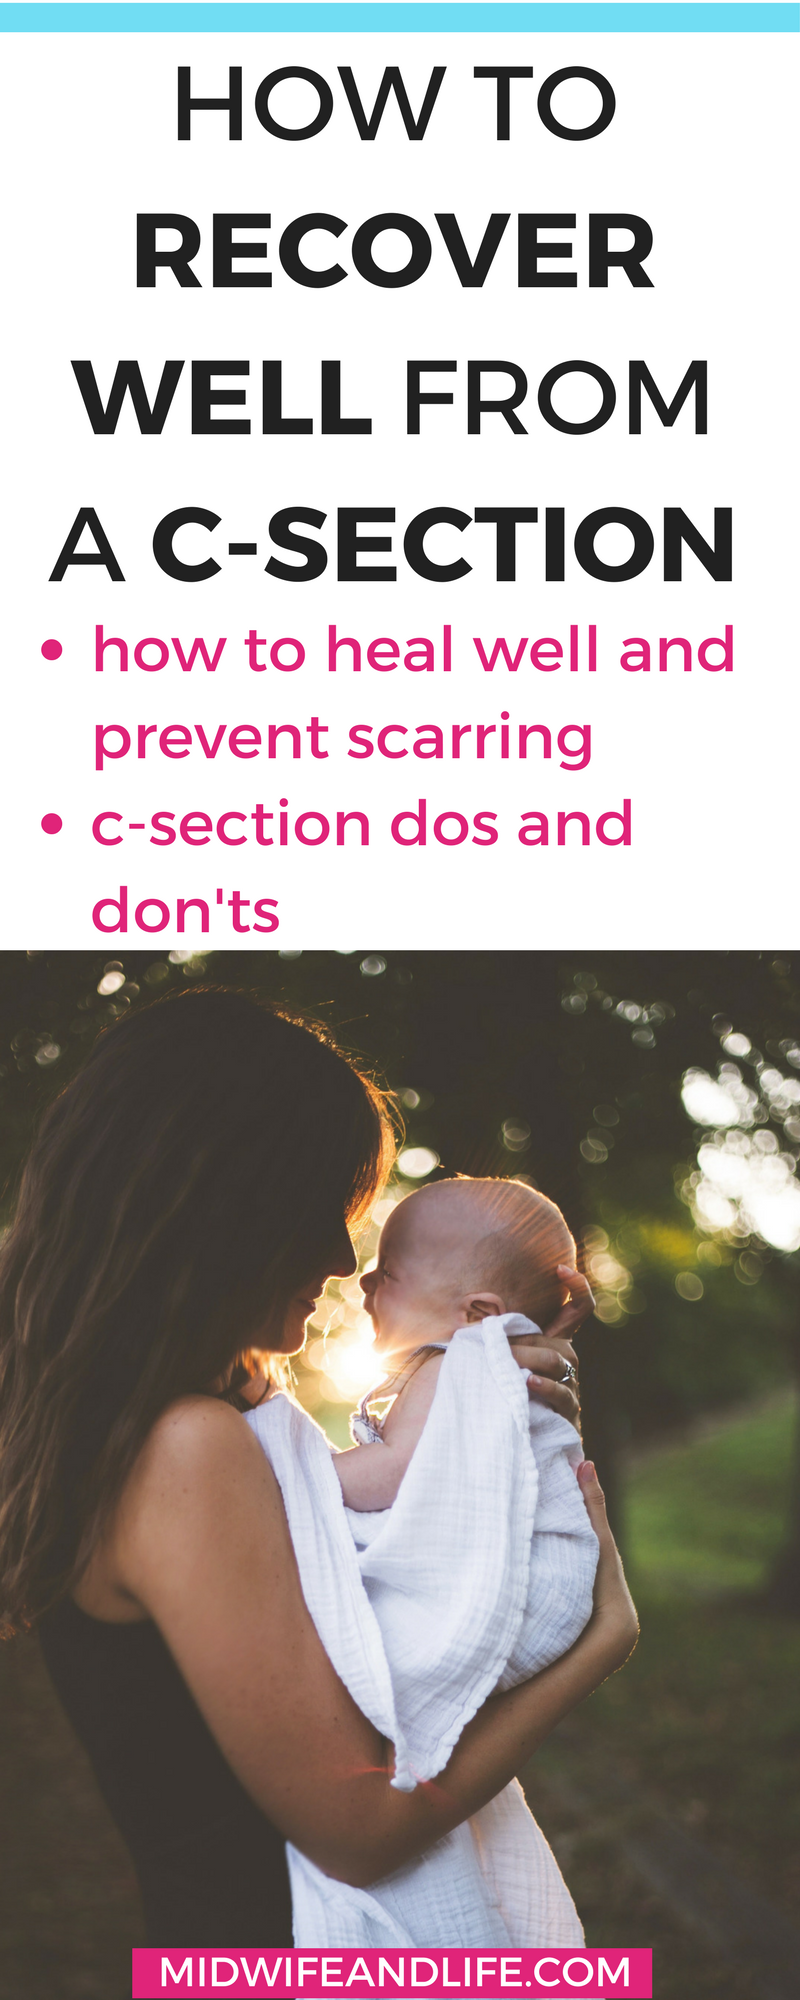 Are you planning on a c-section birth? Or had an emergency c-section? Get the ultimate guide to healing, scar protection, what you can and can't do, how to recover well from a caesearean section